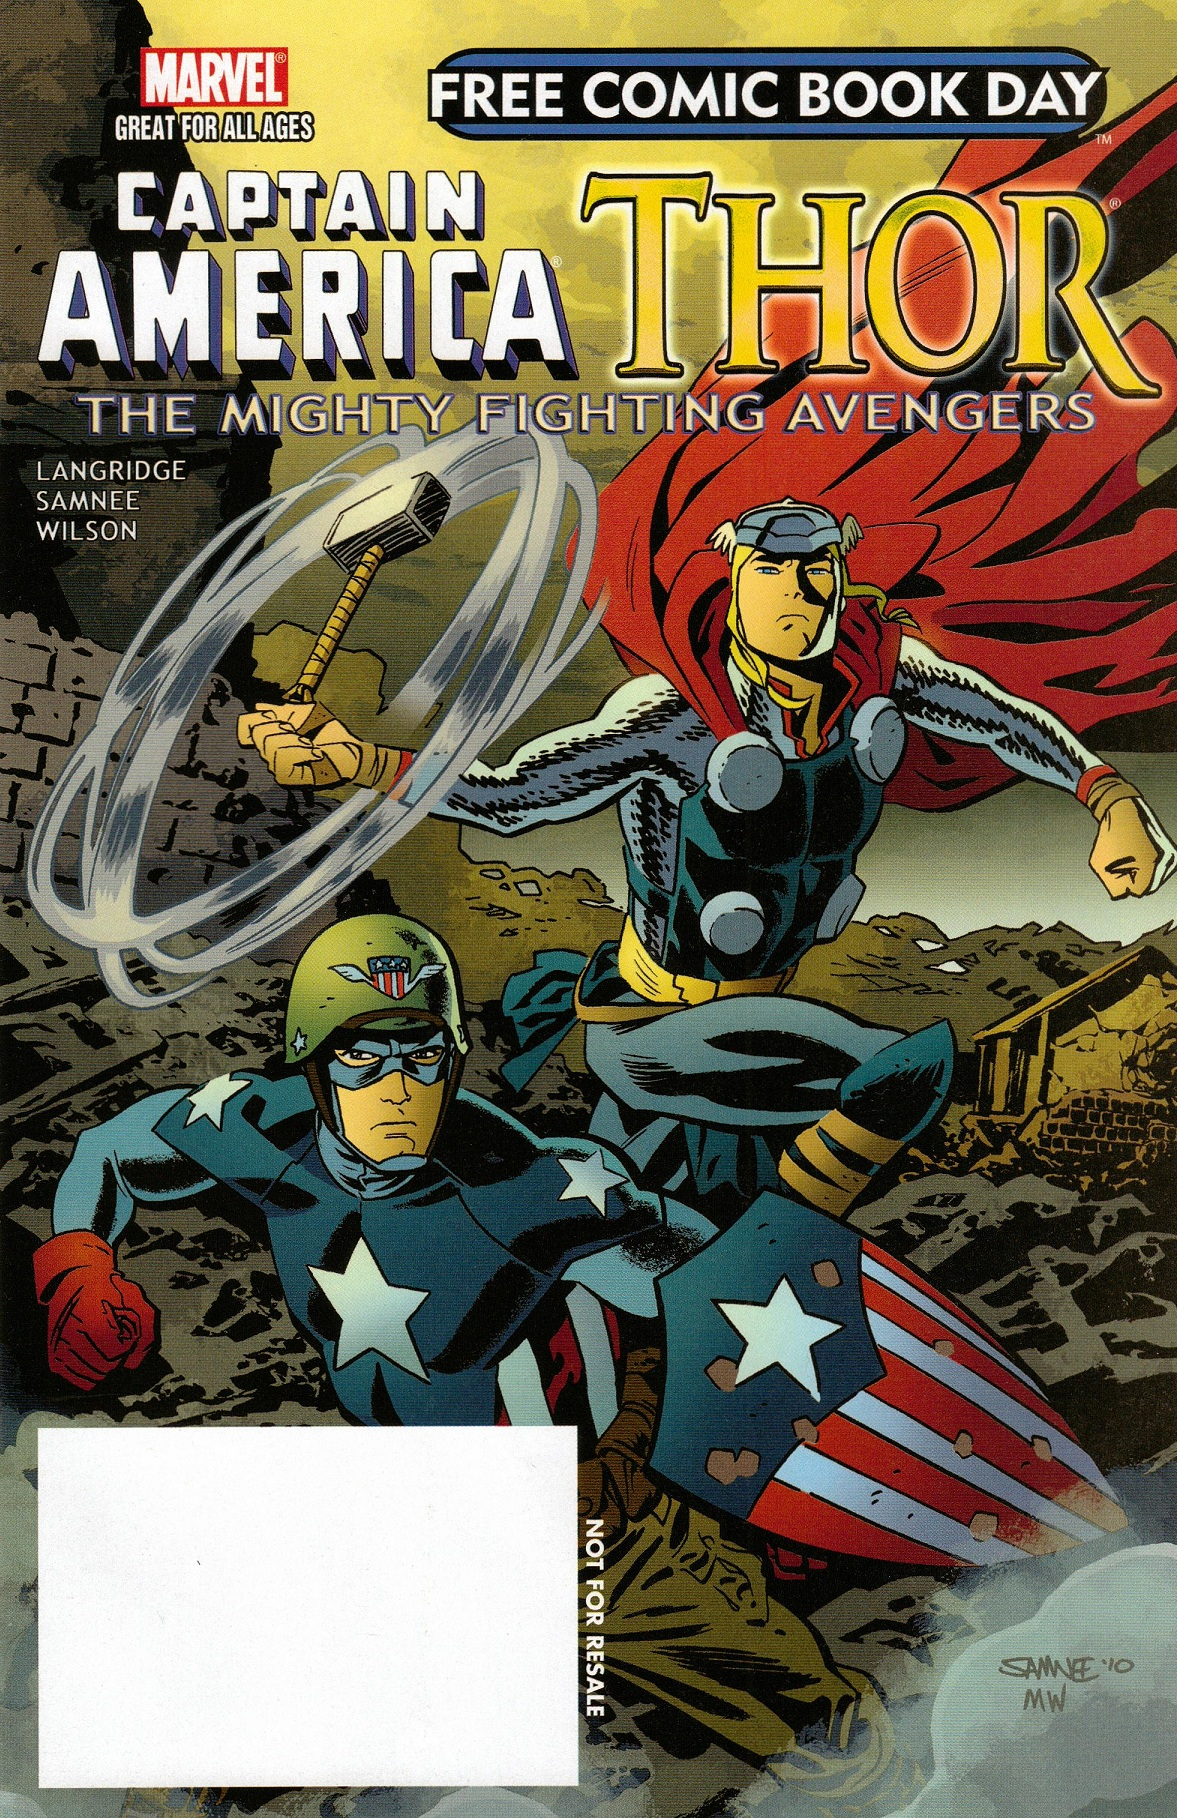 Free Comic Book Day Vol 2011 Captain America Thor